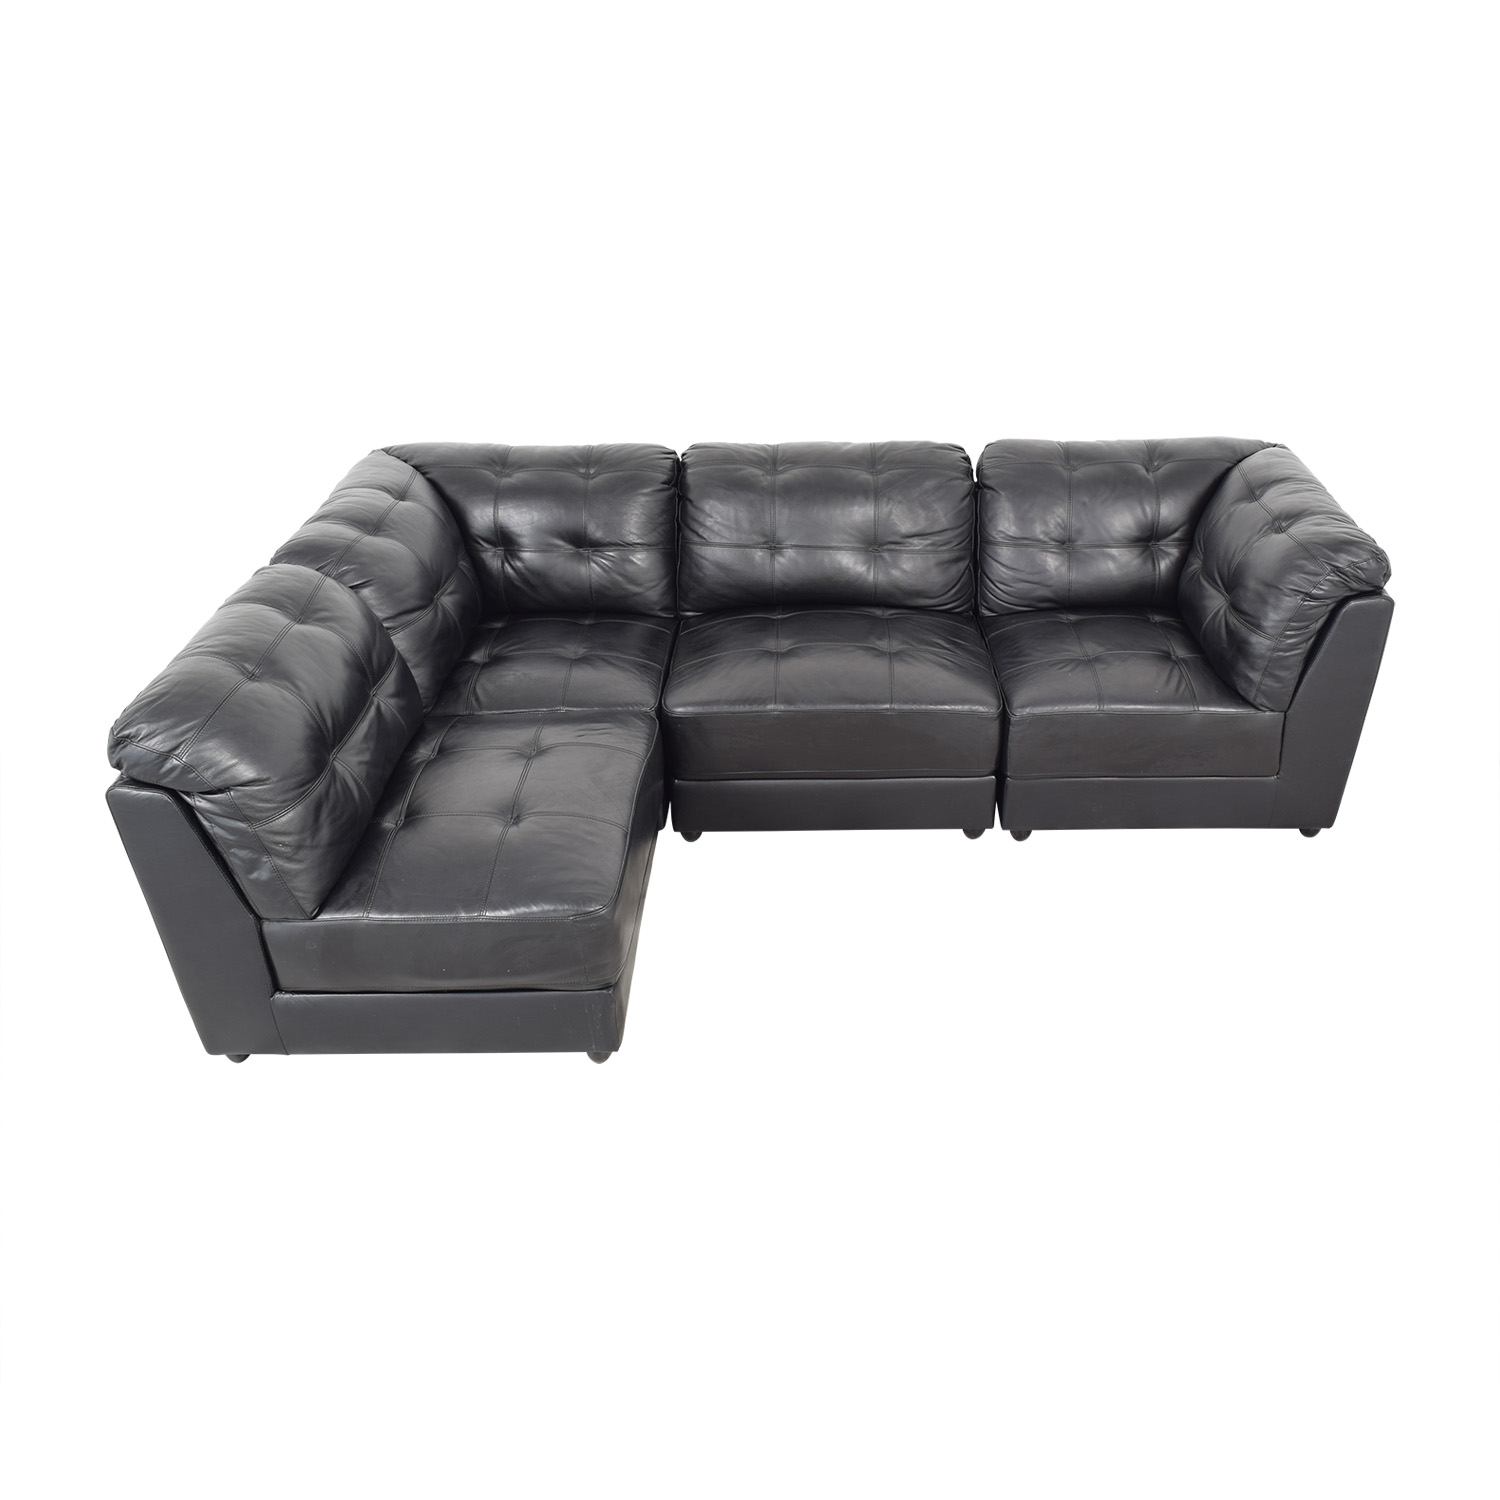 Abbyson Abbyson Ella 5-Piece Black Modular Leather Sectional with Ottoman ma